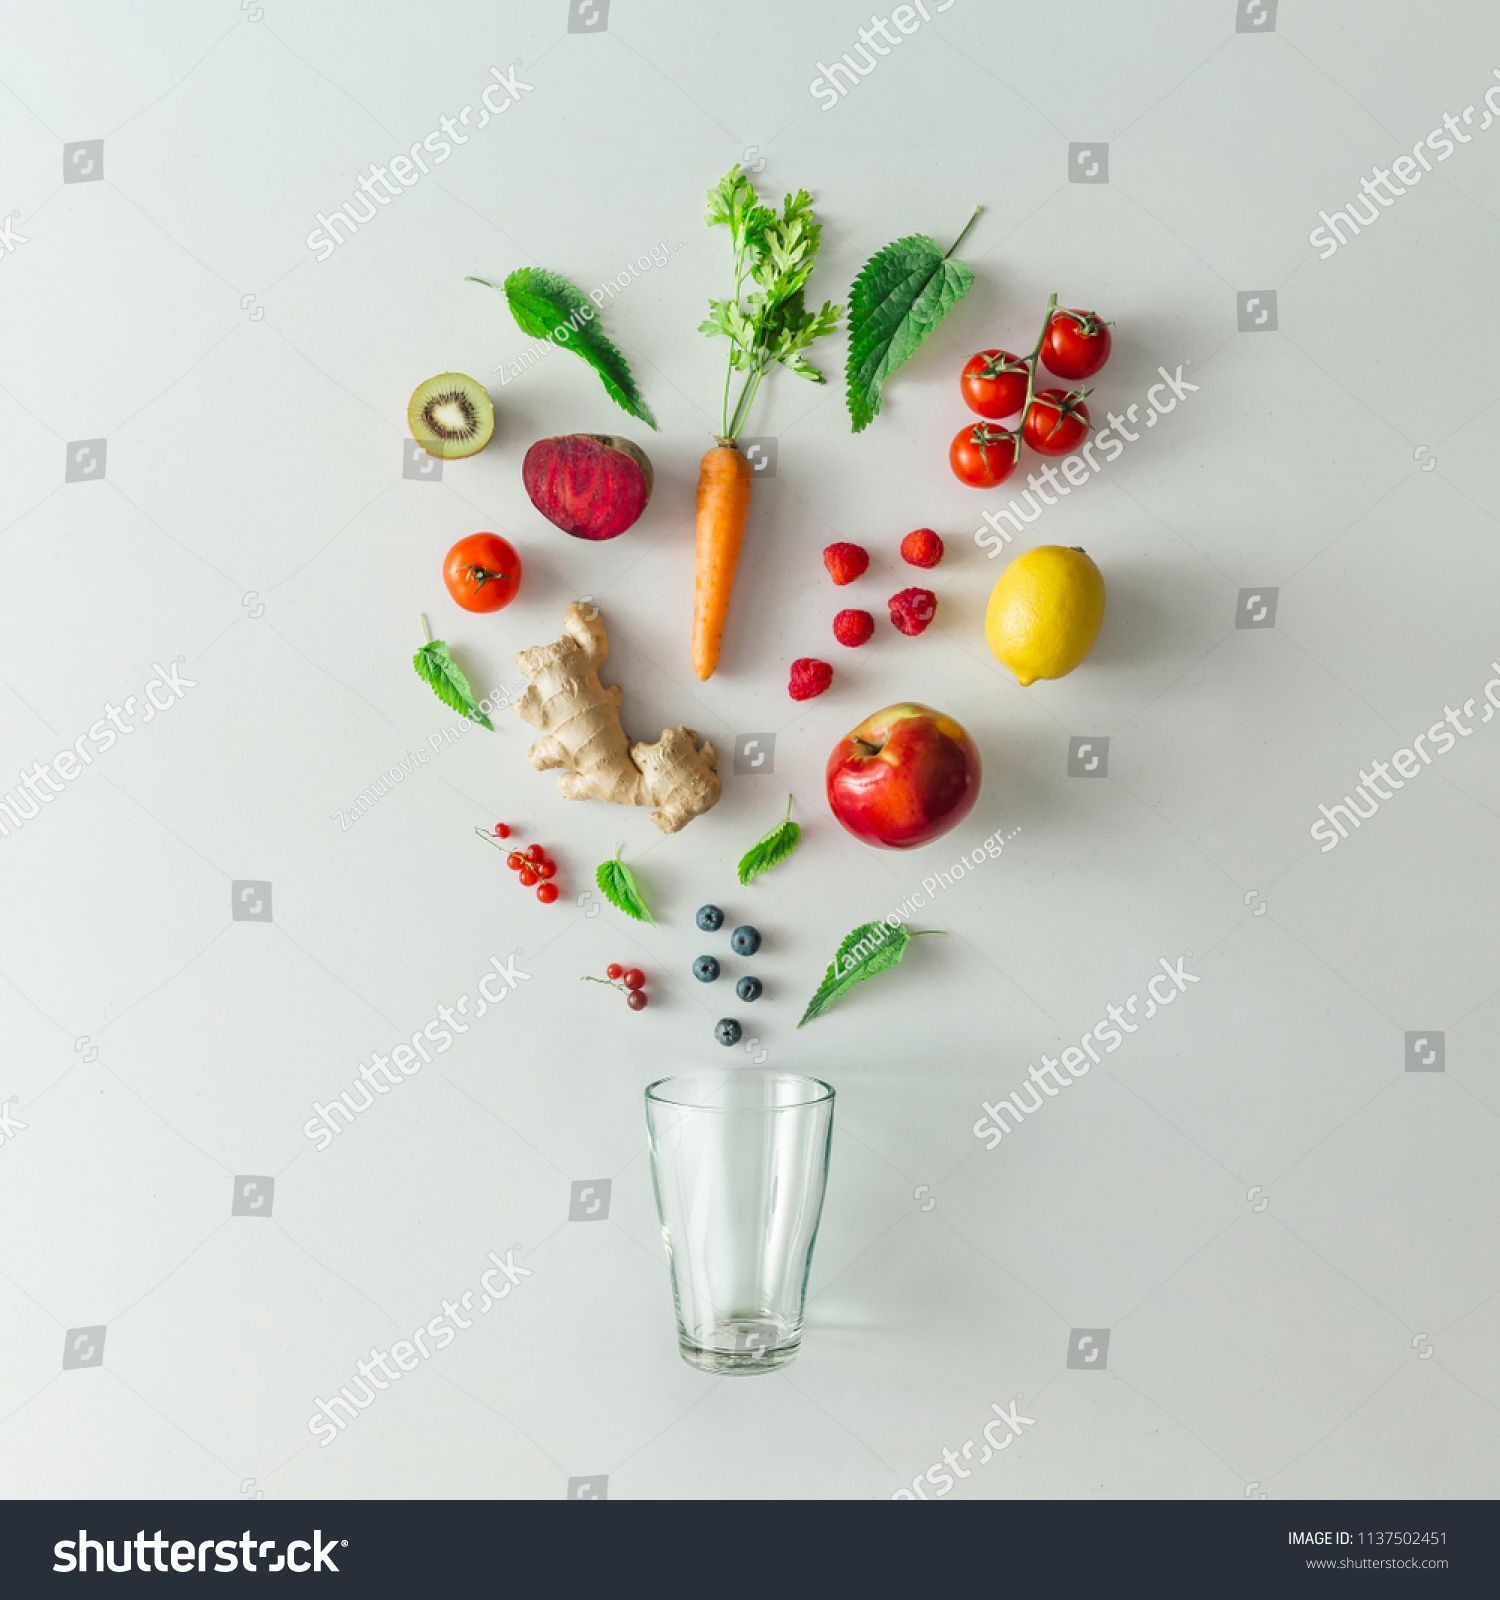 Creative food layout with fruits, vegetables and leaves on bright marble table background wit..., #background #blackMarbleTable #Bright #creative #Food #fruits #layout #leaves #marble #MarbleTablebedroom #MarbleTabledesign #MarbleTabledining #MarbleTablediy #MarbleTablekitchen #MarbleTablelivingroom #MarbleTablerestaurant #MarbleTabletop #roundMarbleTable #table #vegetables #wit Check more at...